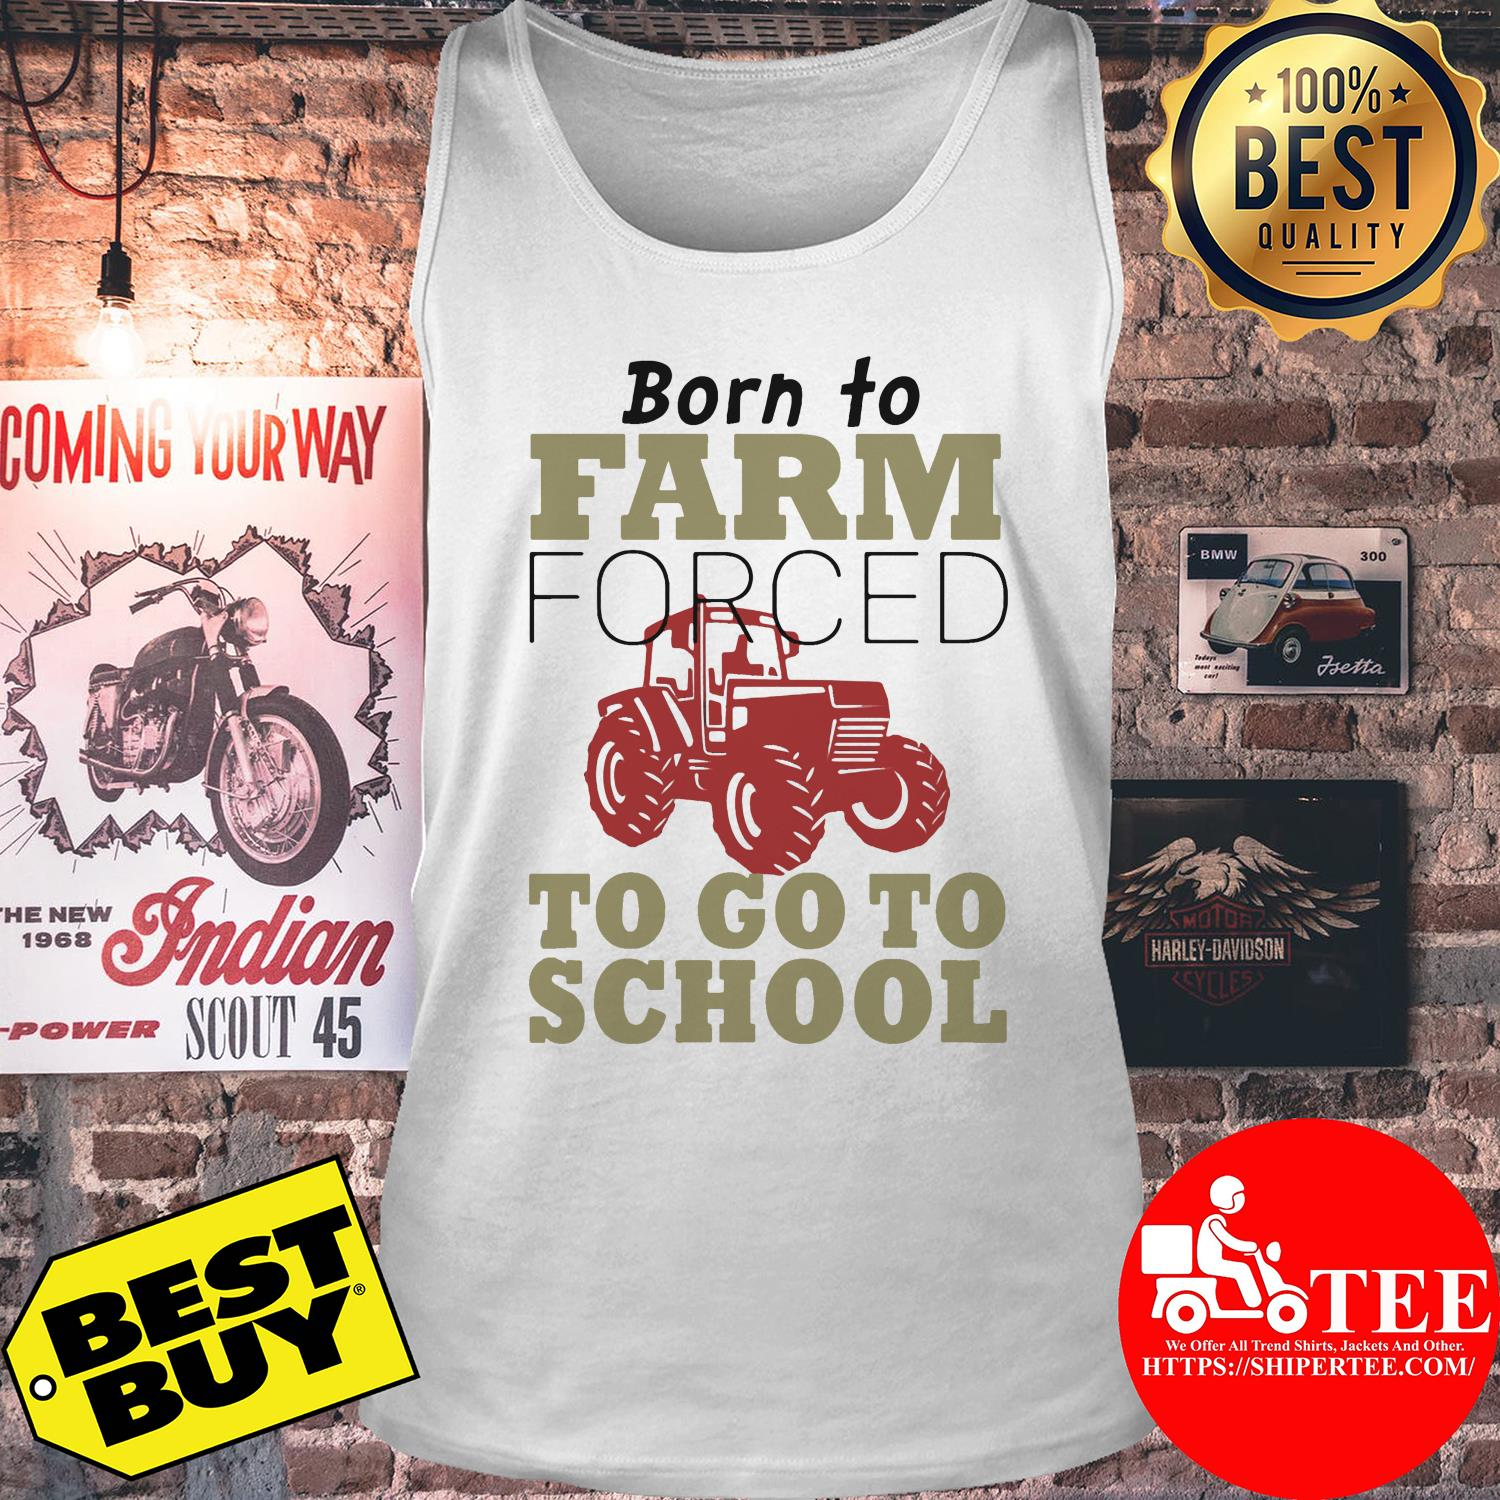 Born to farm forced to go to school tank top